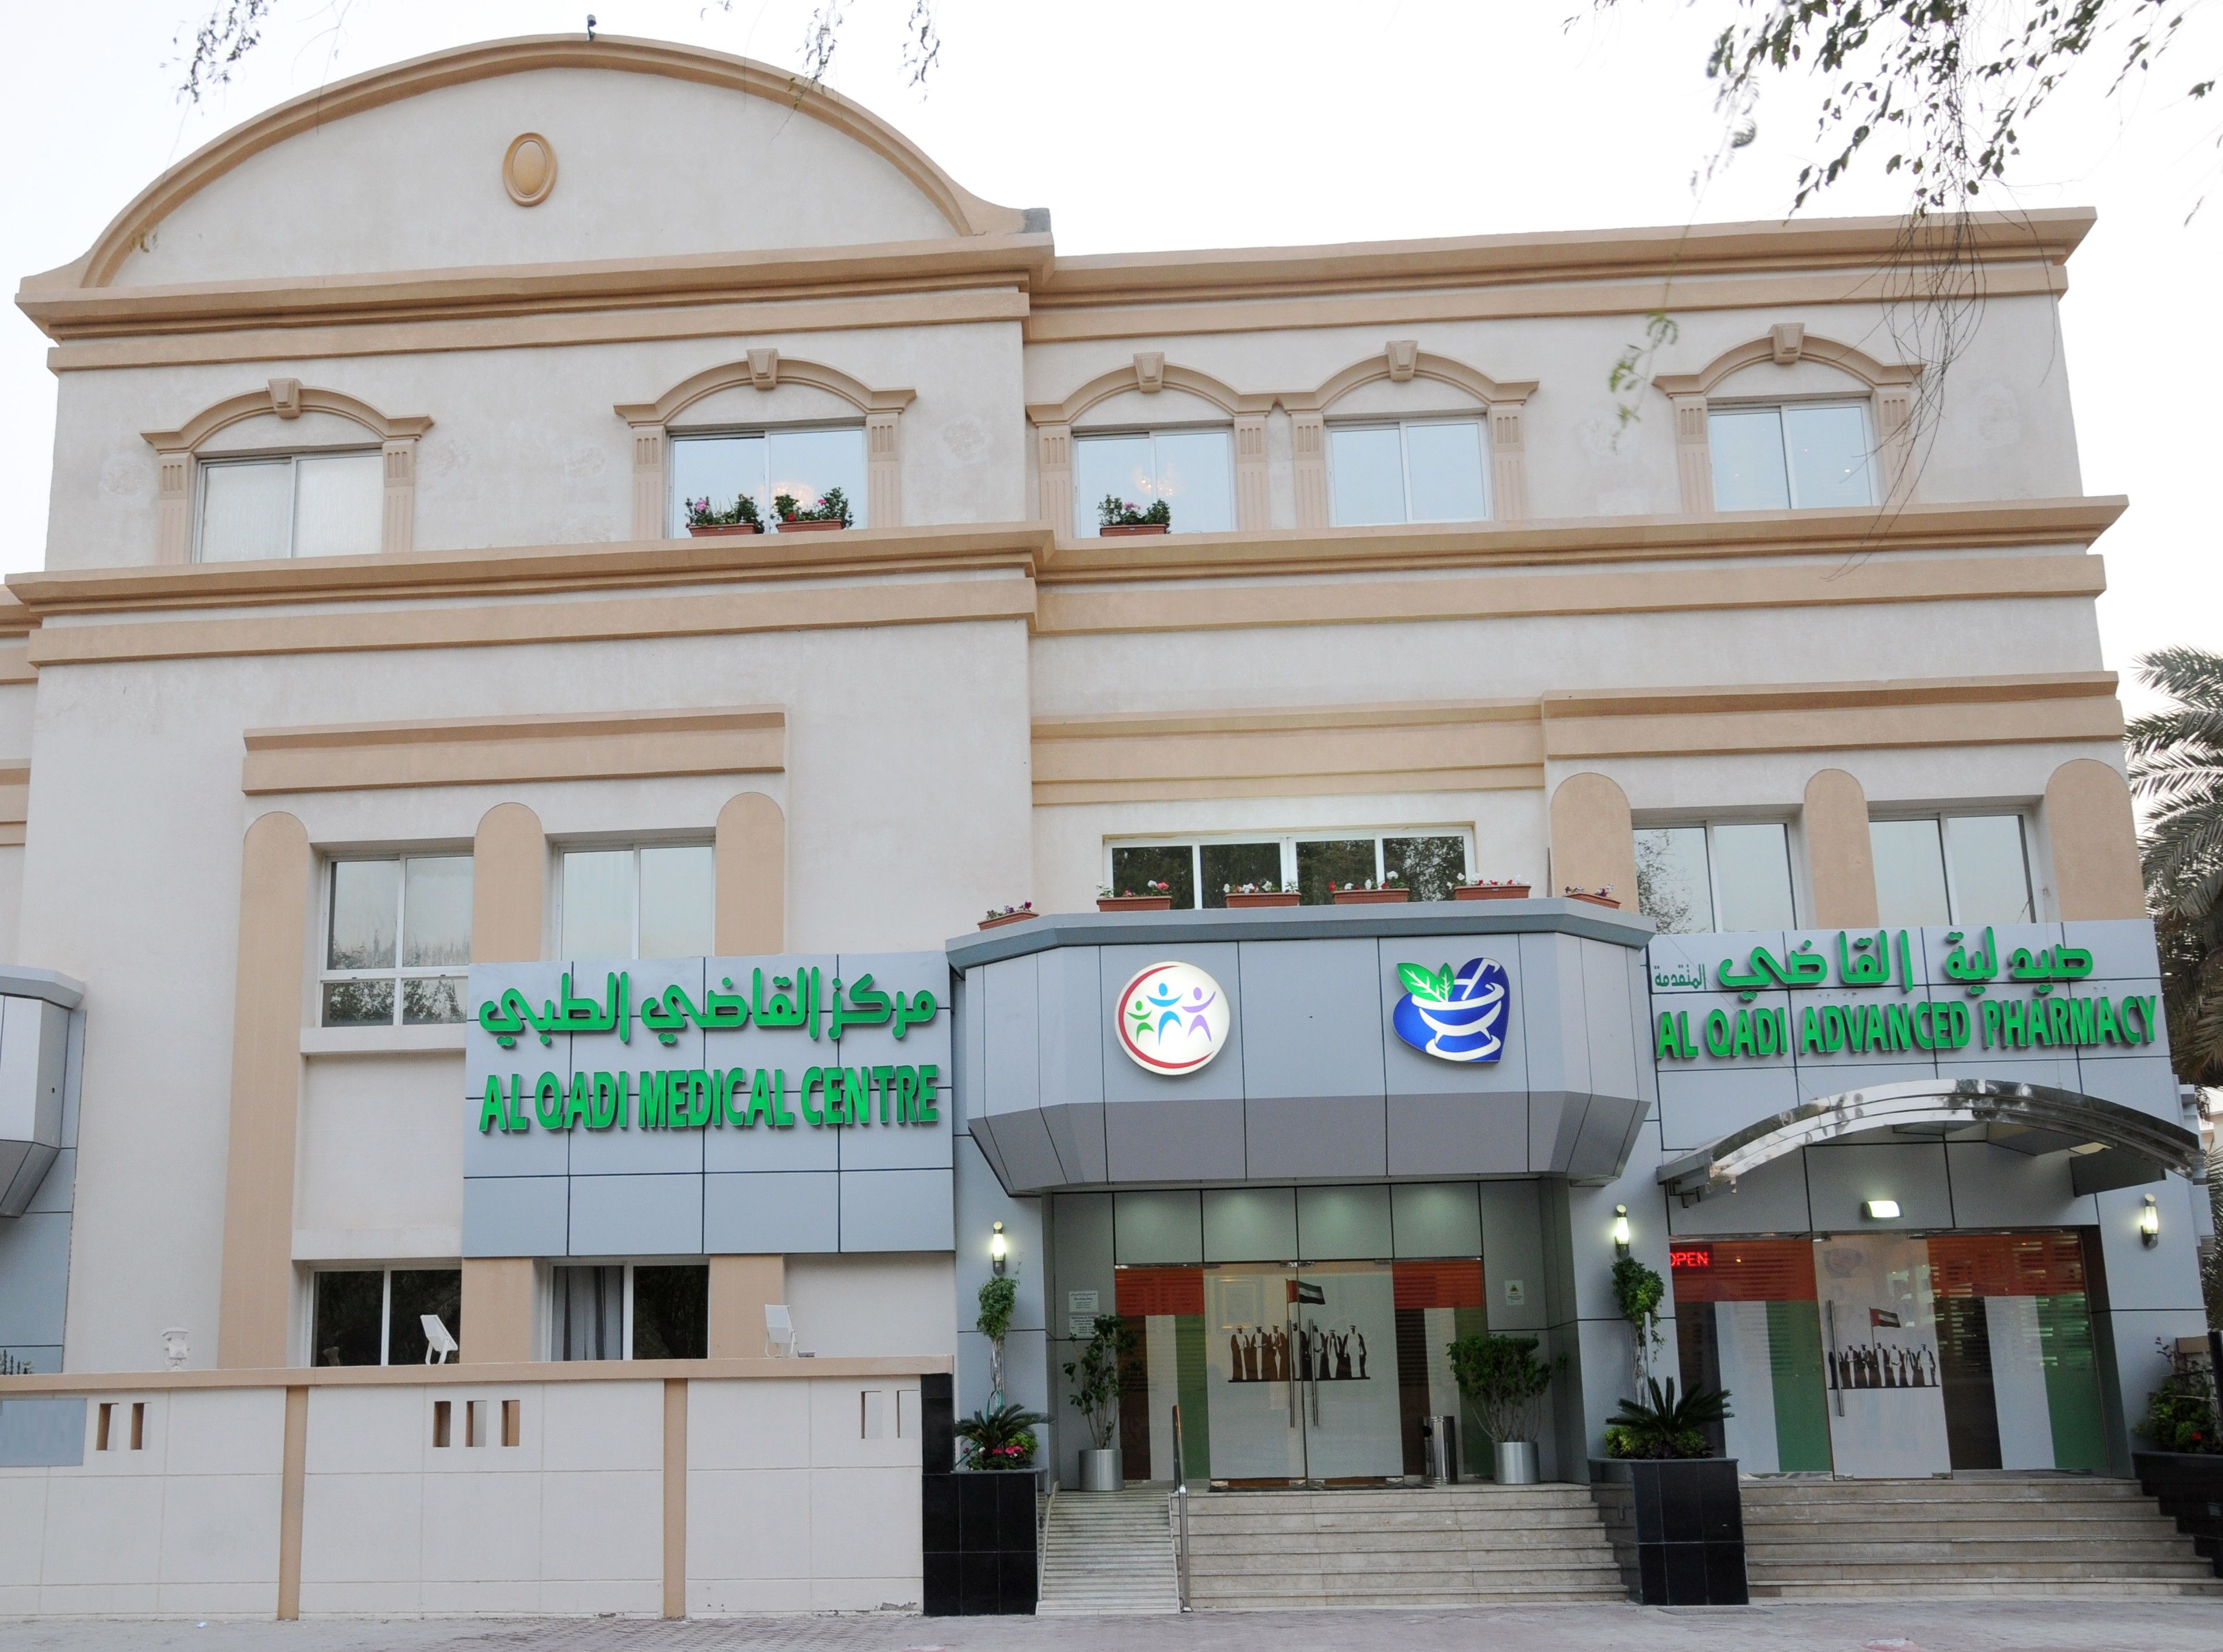 Al Qadi Medical Center 1